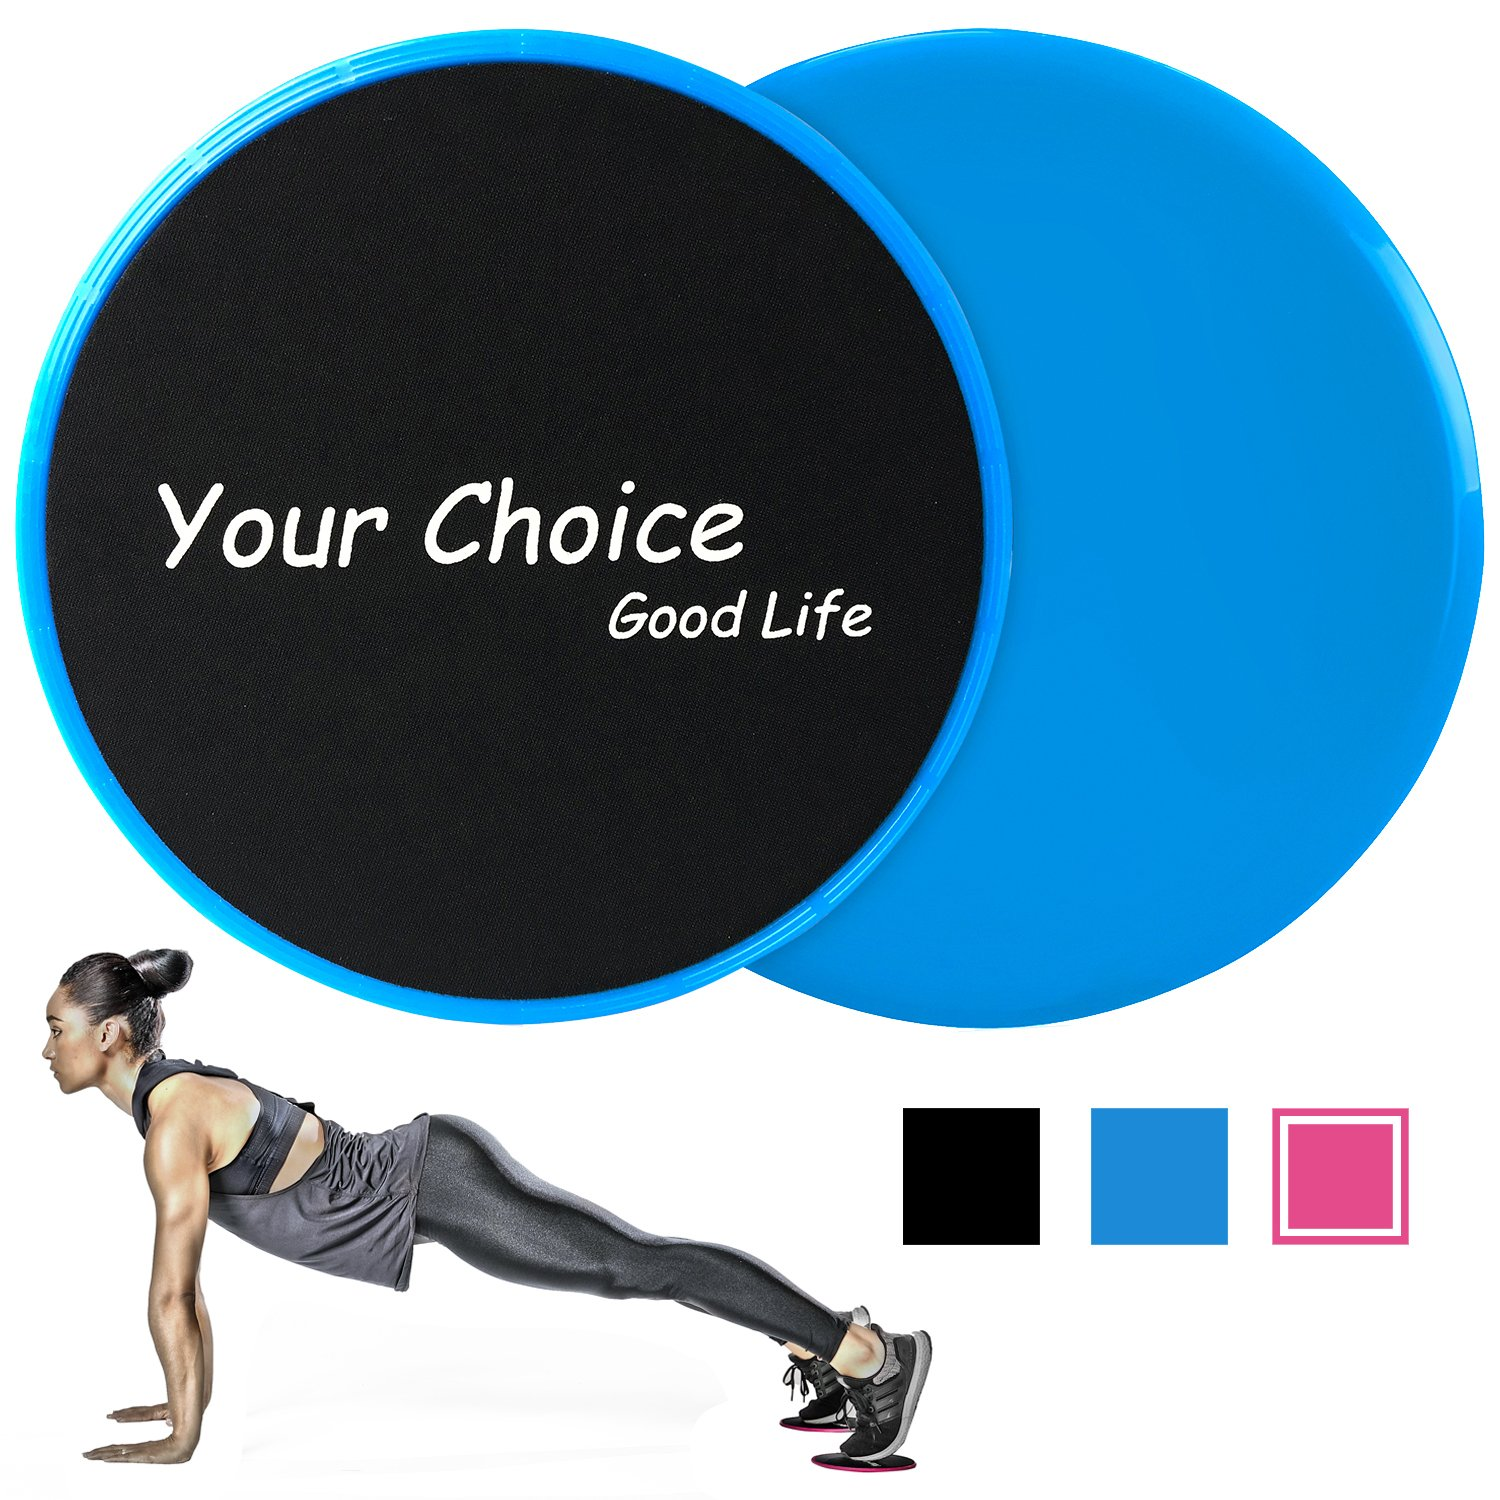 Your Choice Gliding Discs Sliders Fitness Core for Total Body Compact for Travel or Home Ab Workout, Color Blue Set of 2